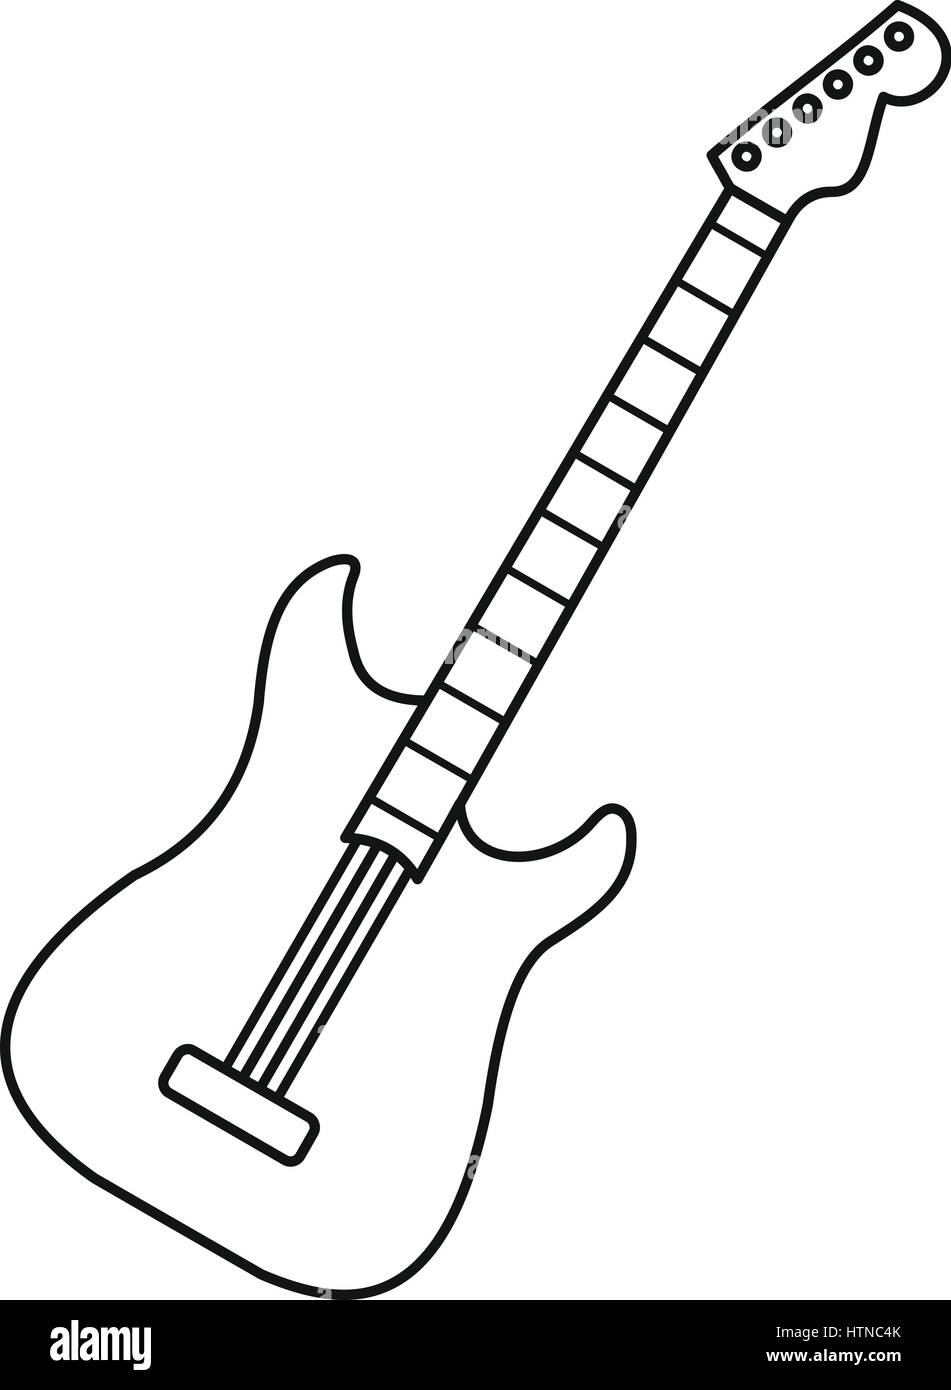 acoustic guitar icon outline illustration of acoustic